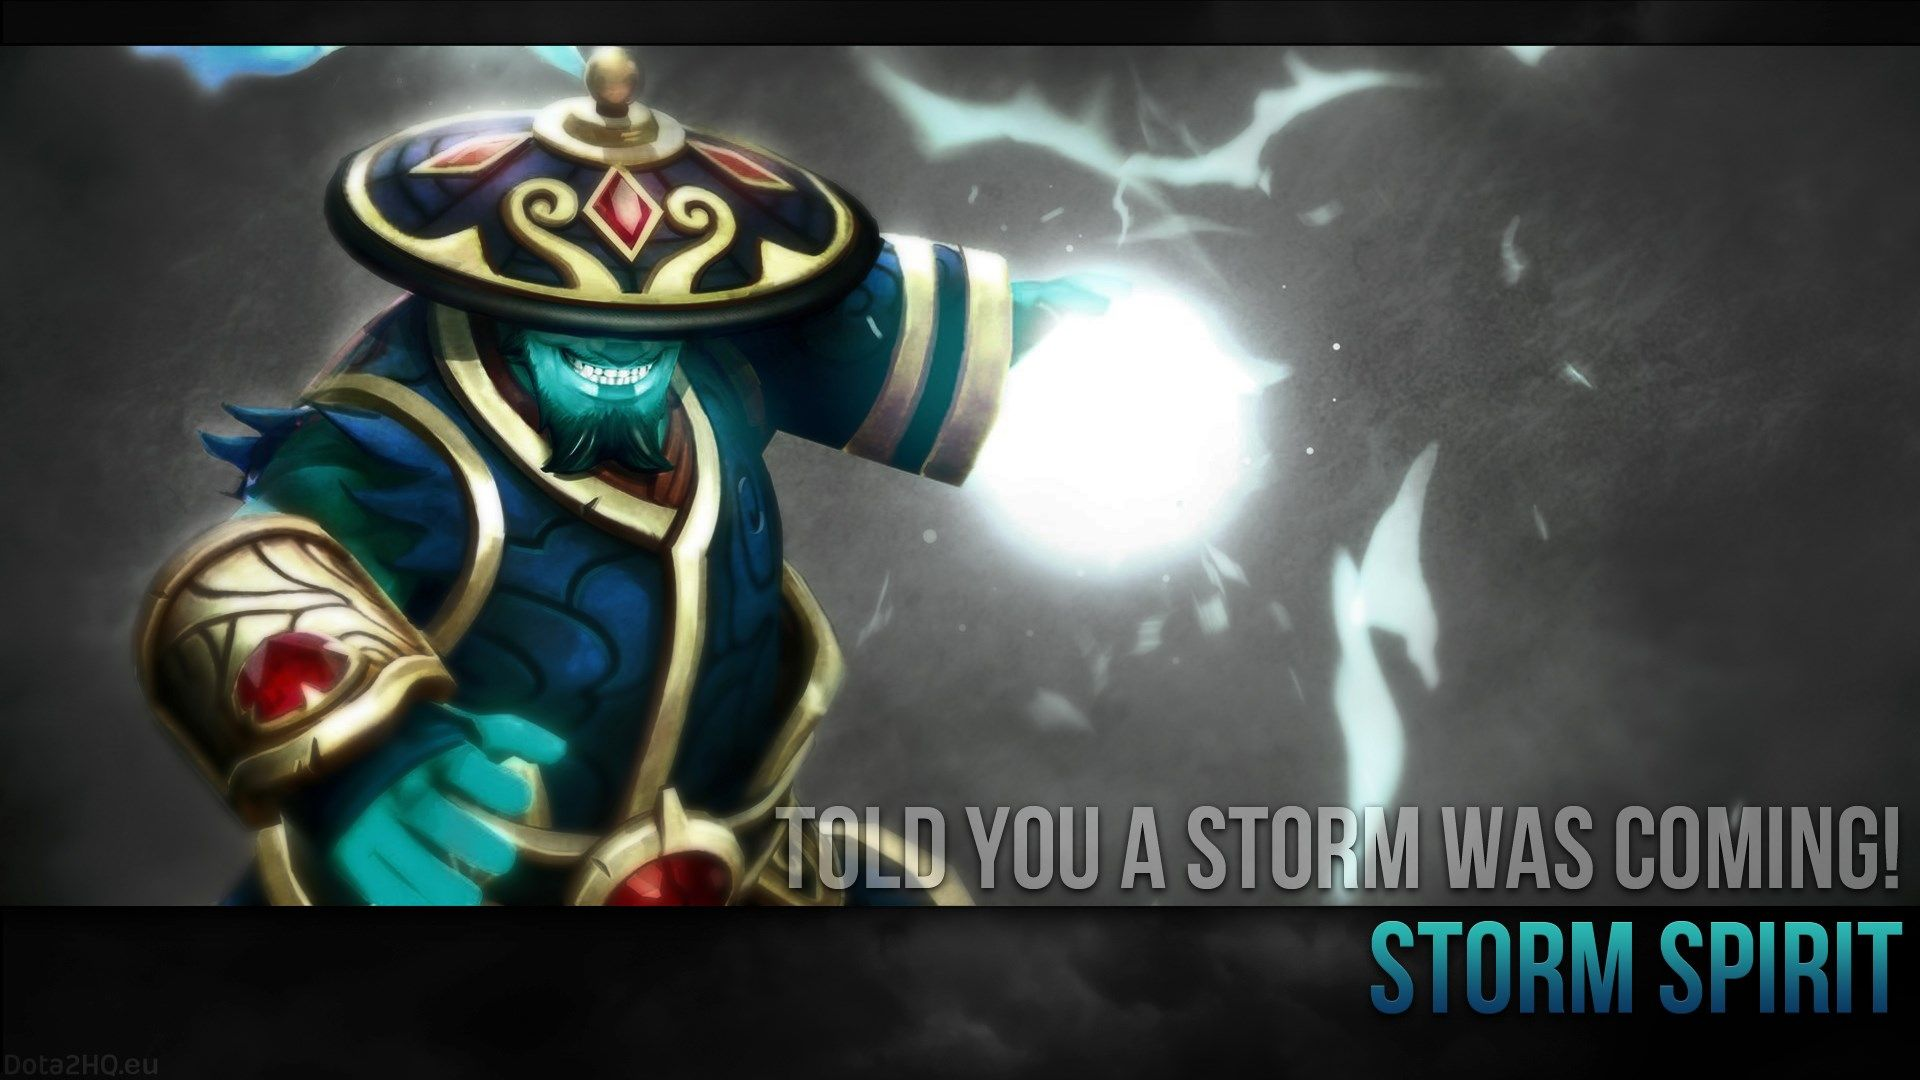 1920x1080 Storm Spirit Dota 2 Background Dota 2 Dialogues In